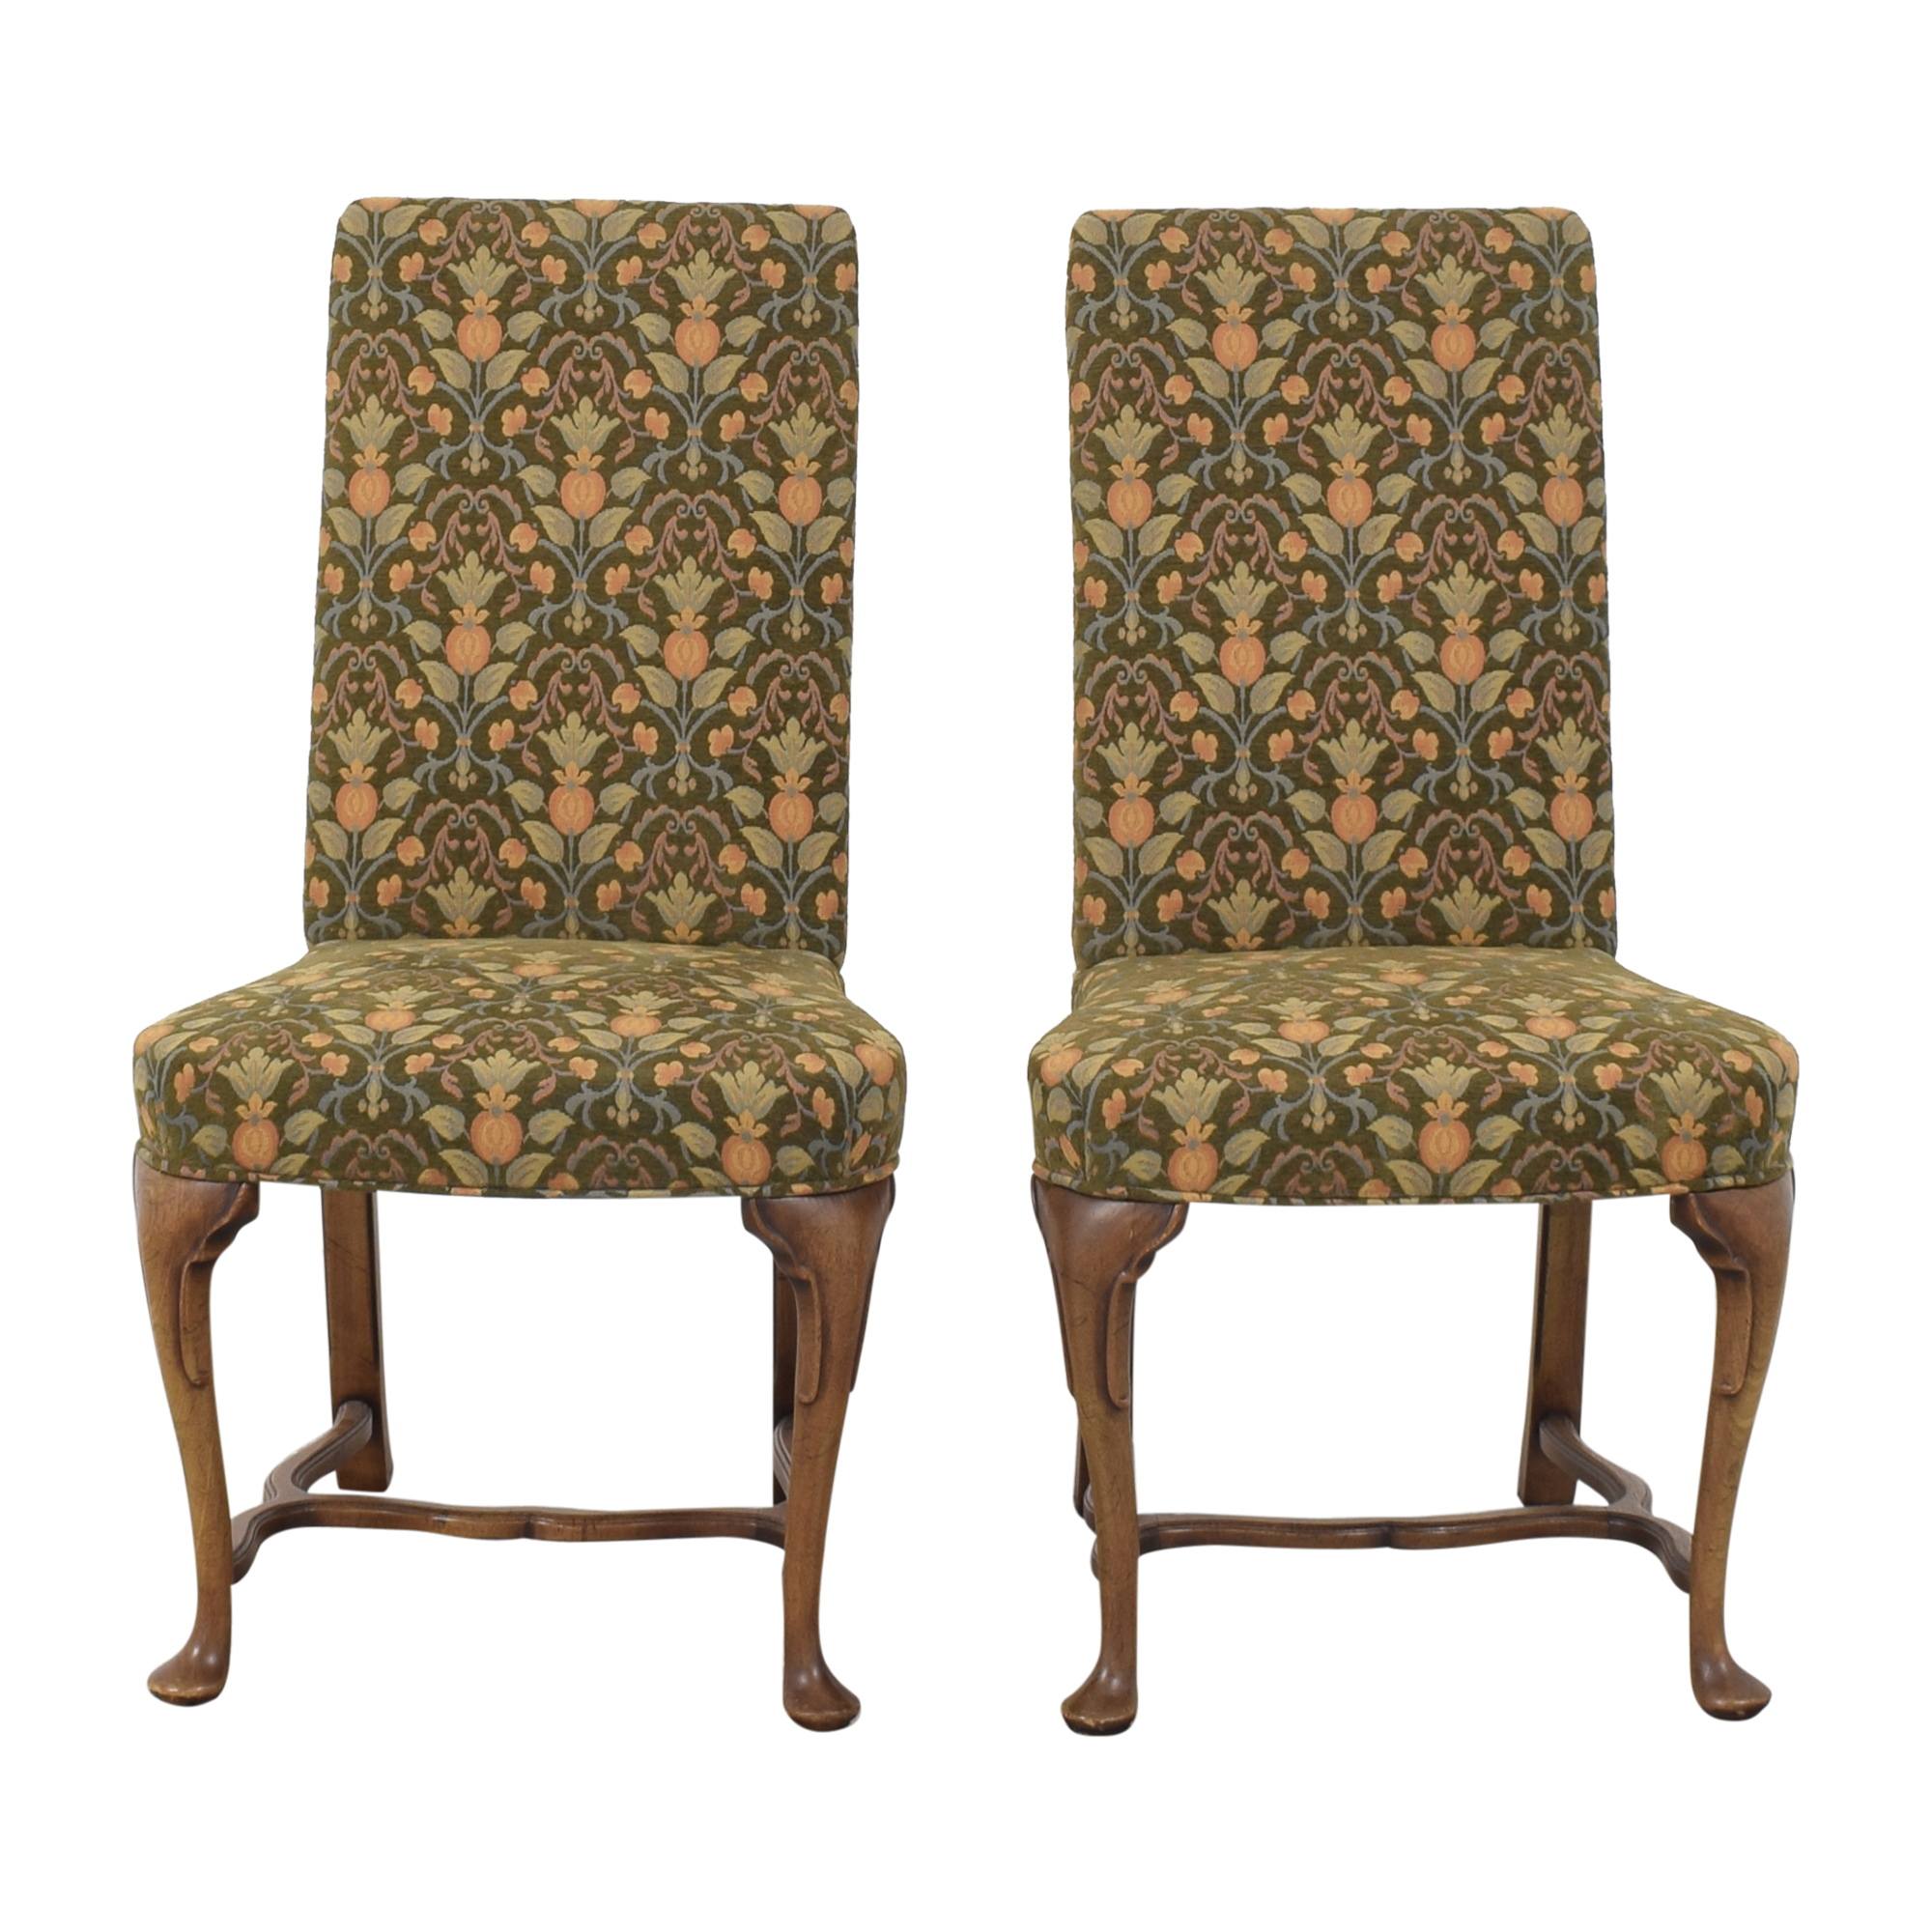 Macy's Upholstered Dining Chairs sale